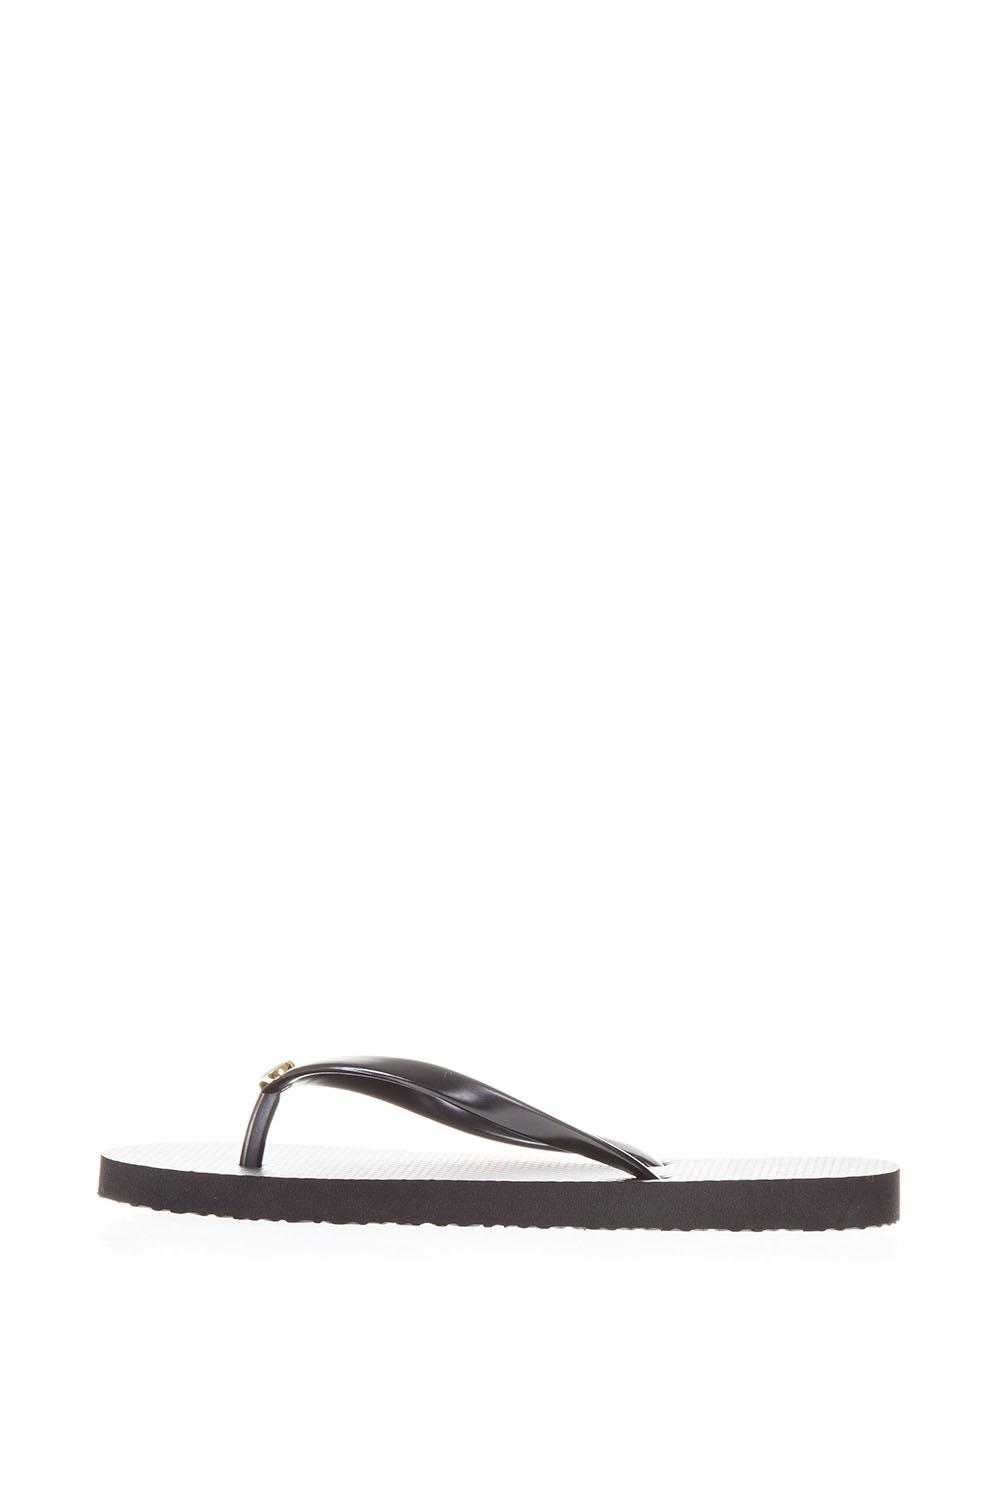 Infradito TORY BURCH - Thin Flip Flop 50008666 Black 009